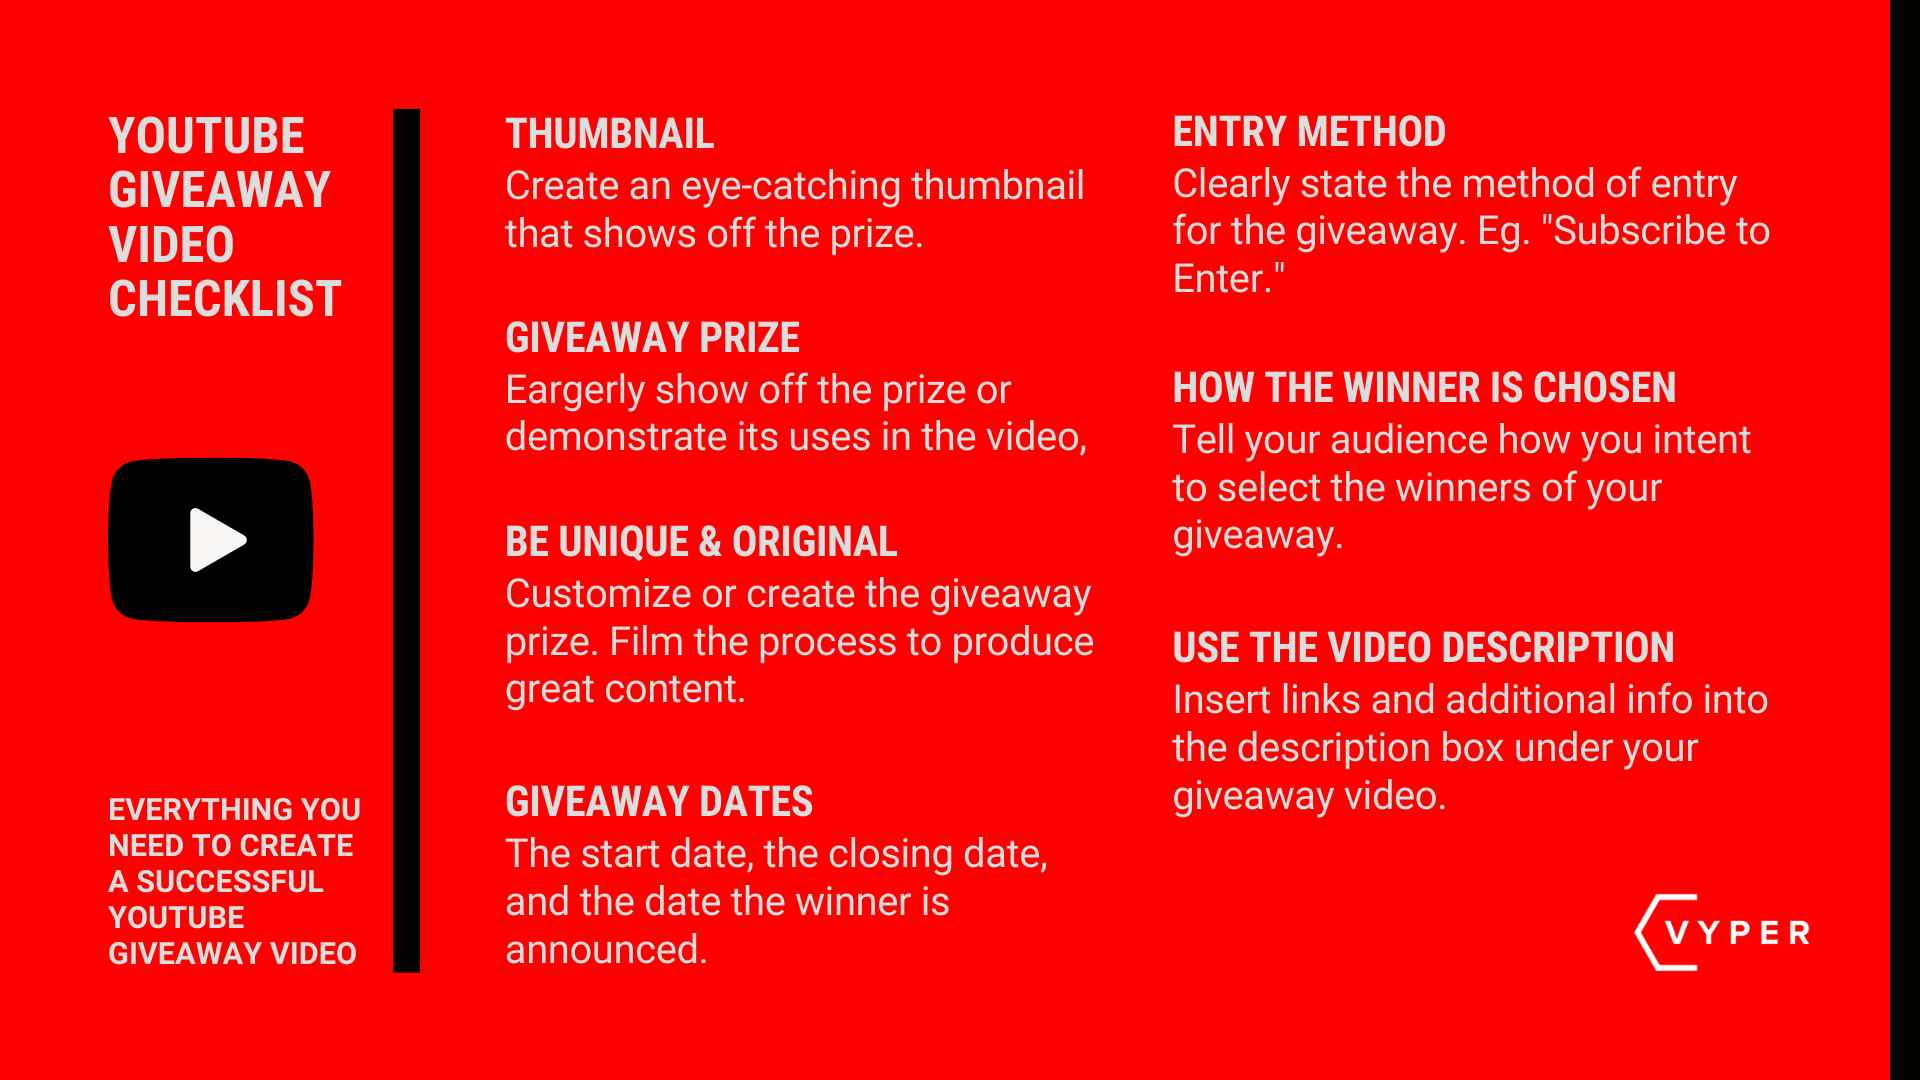 YouTube Giveaway Checklist